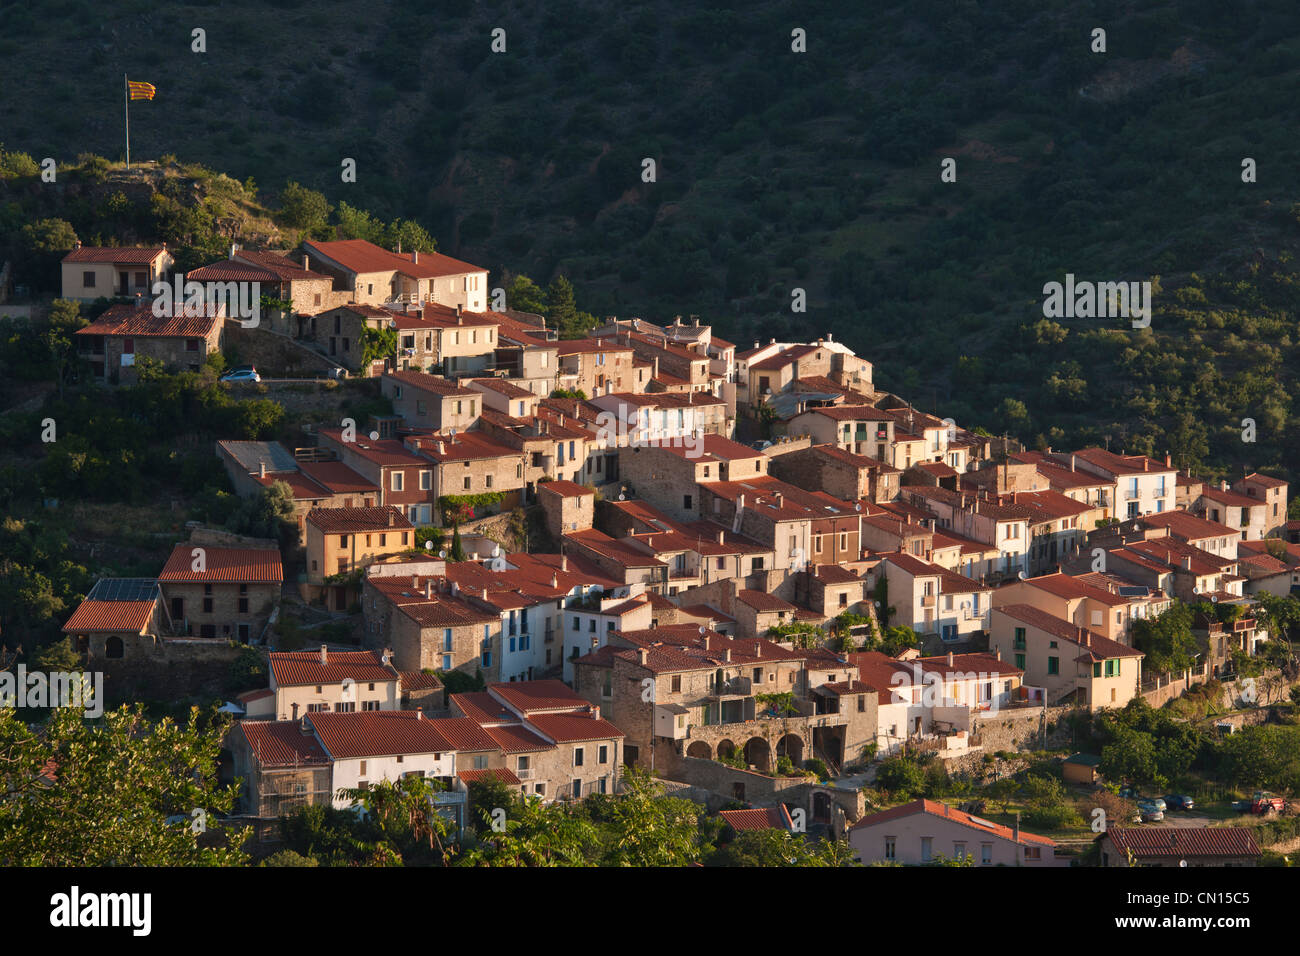 France, Pyrenees Orientales, the village of Ria Sirach, close to Villefranche de Conflent - Stock Image